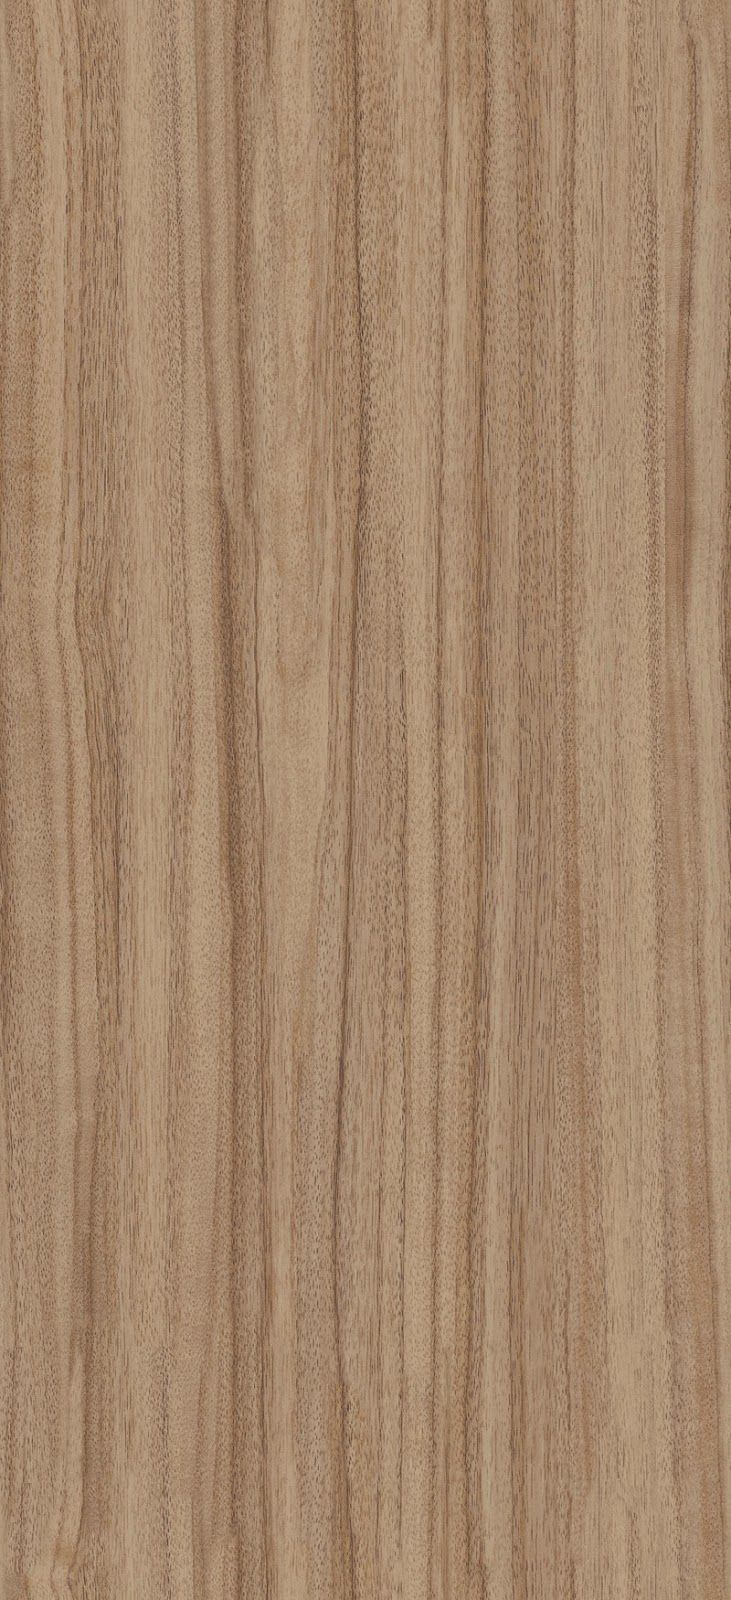 17 Best Images About Materials Wood Veneers Types Of